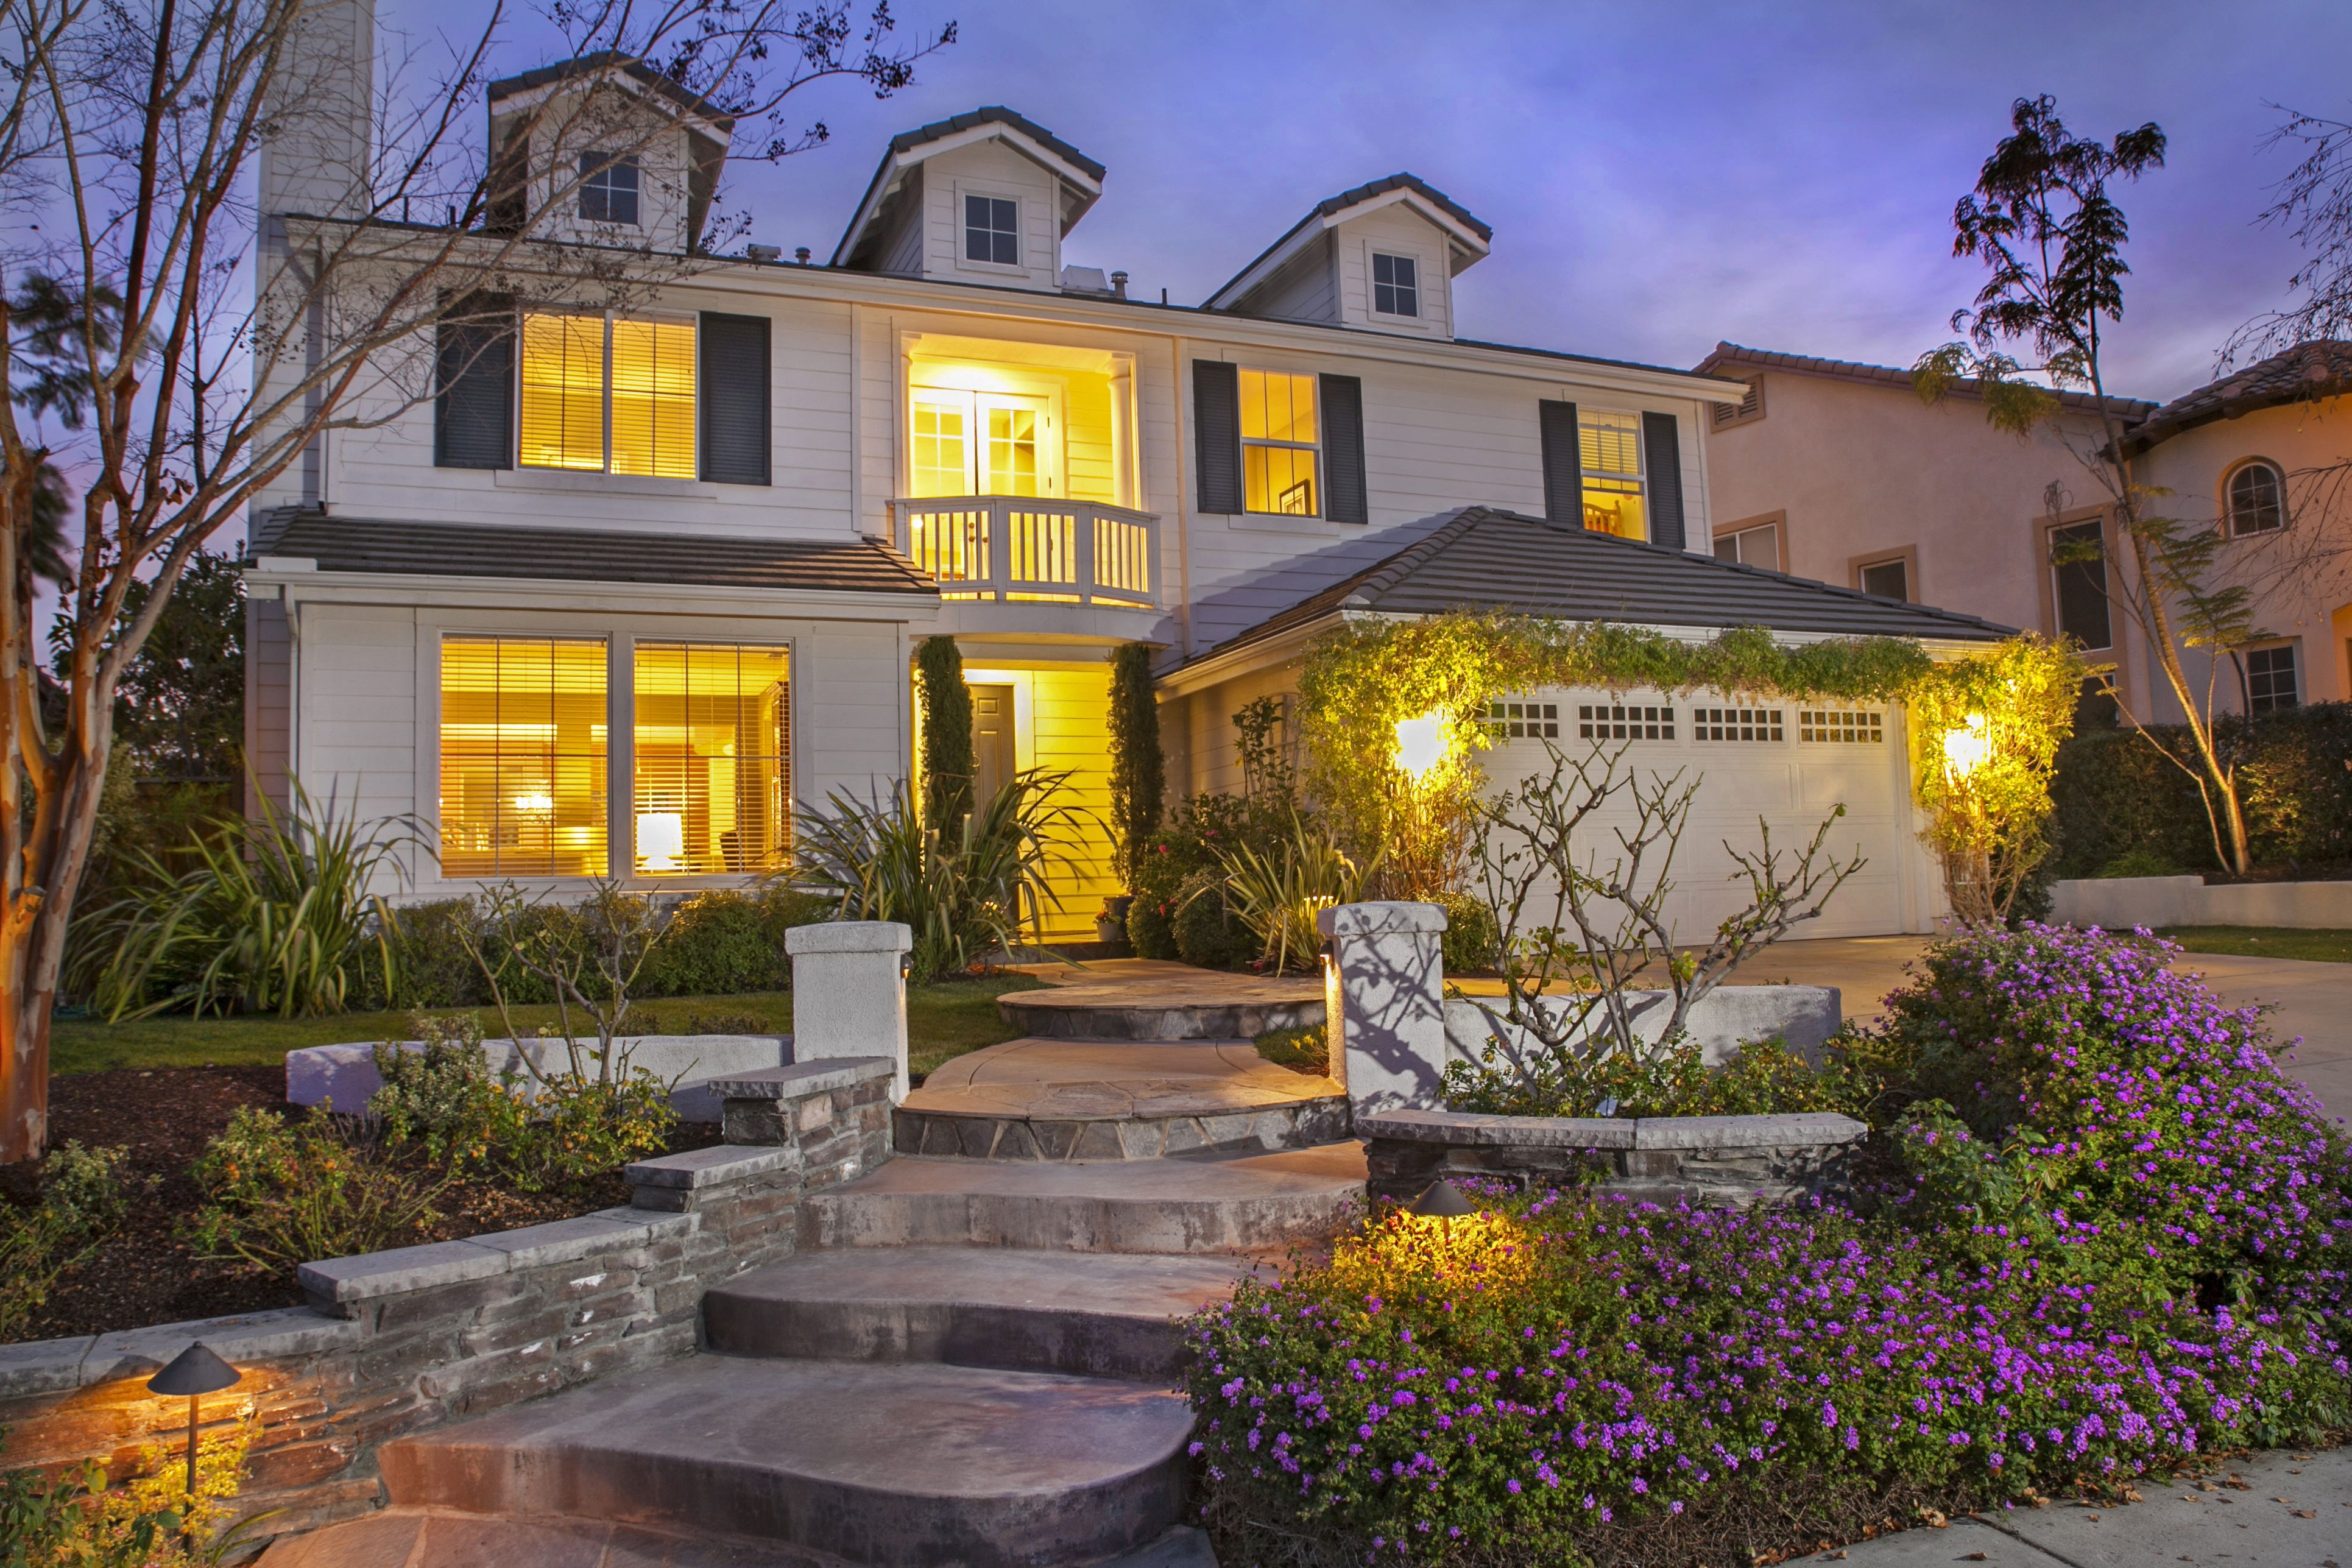 Curb appeal at its finest real estate real estate